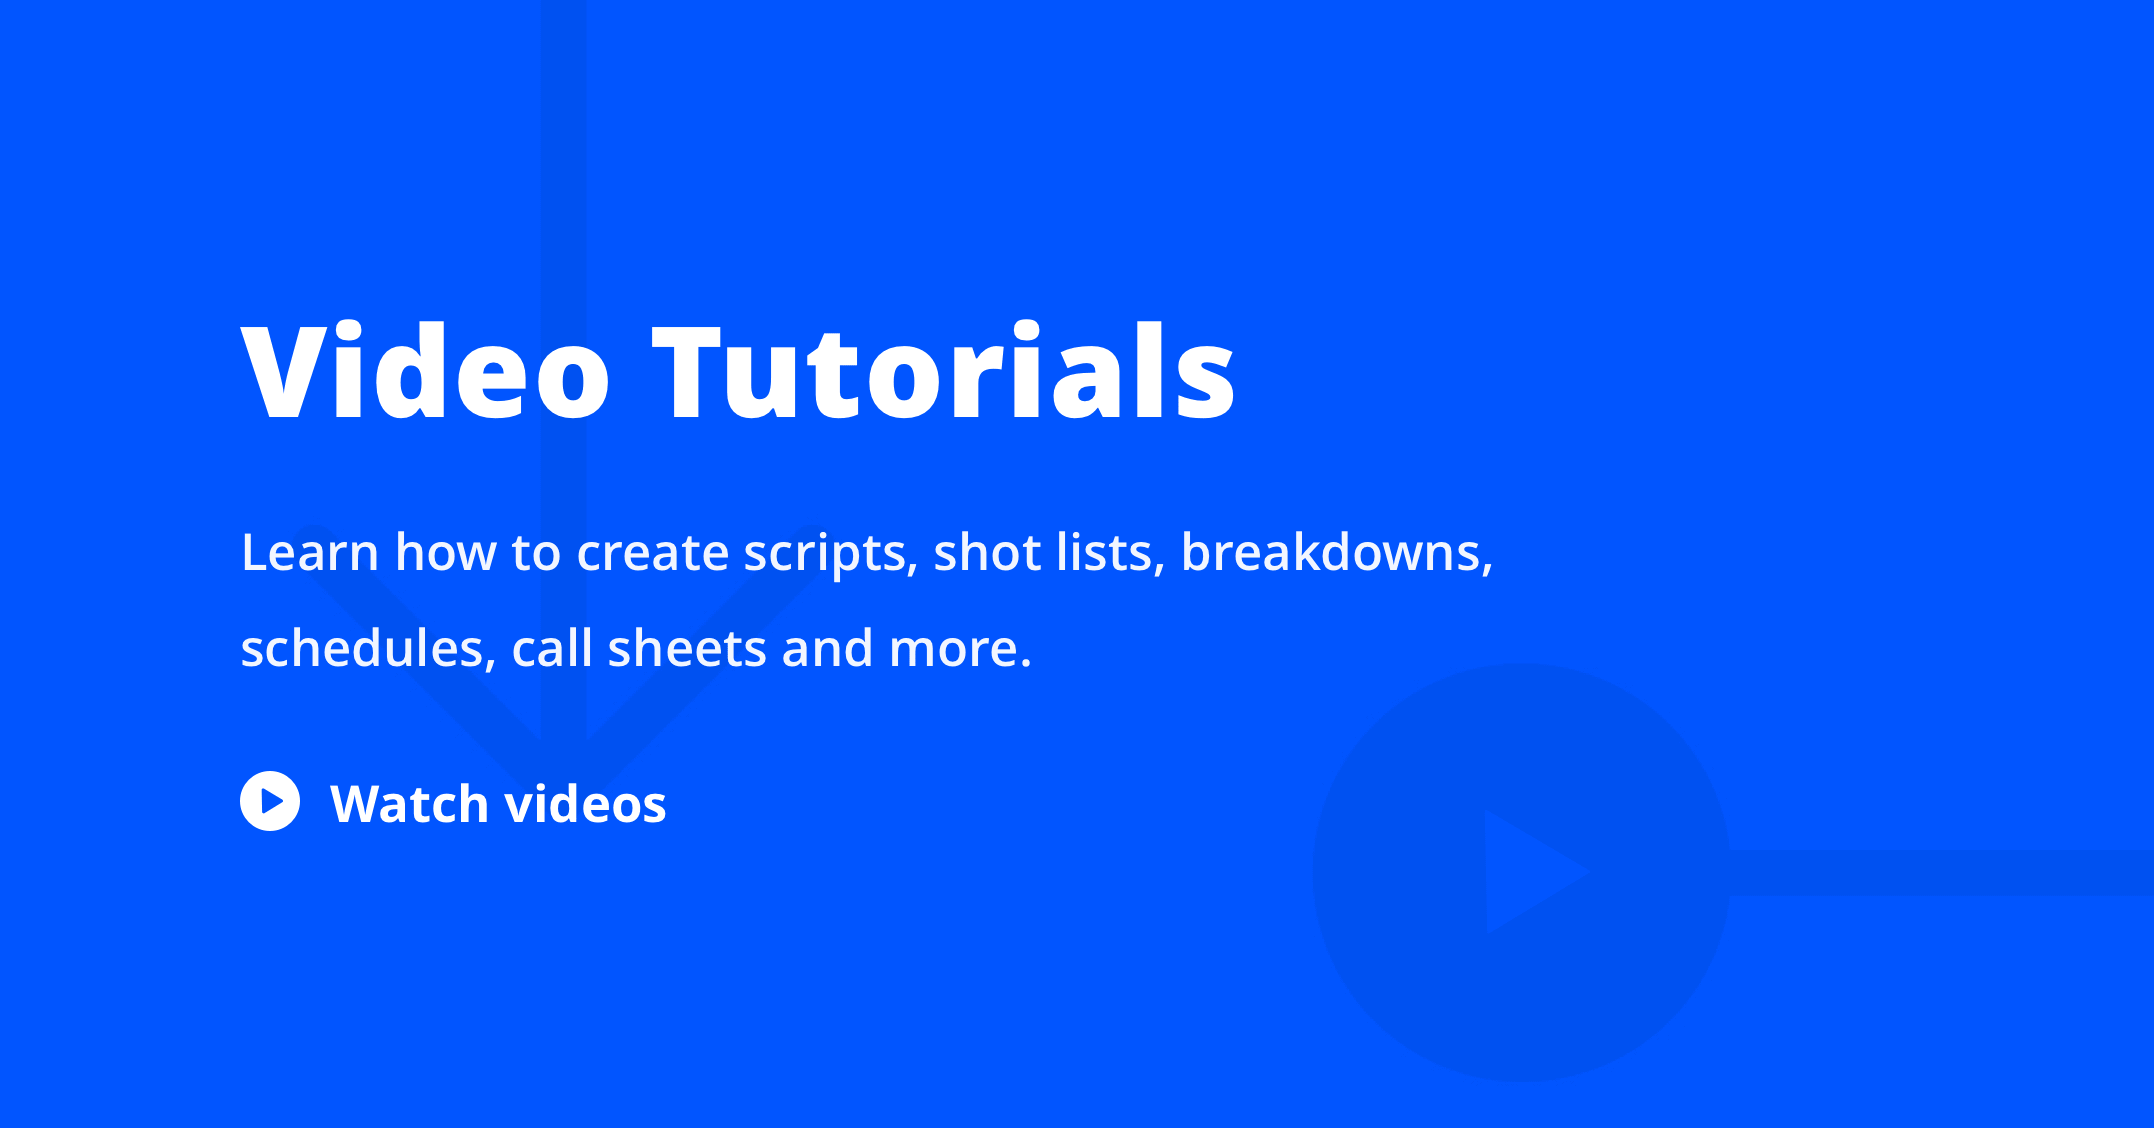 Blog Index - Product - StudioBinder Video Tutorials